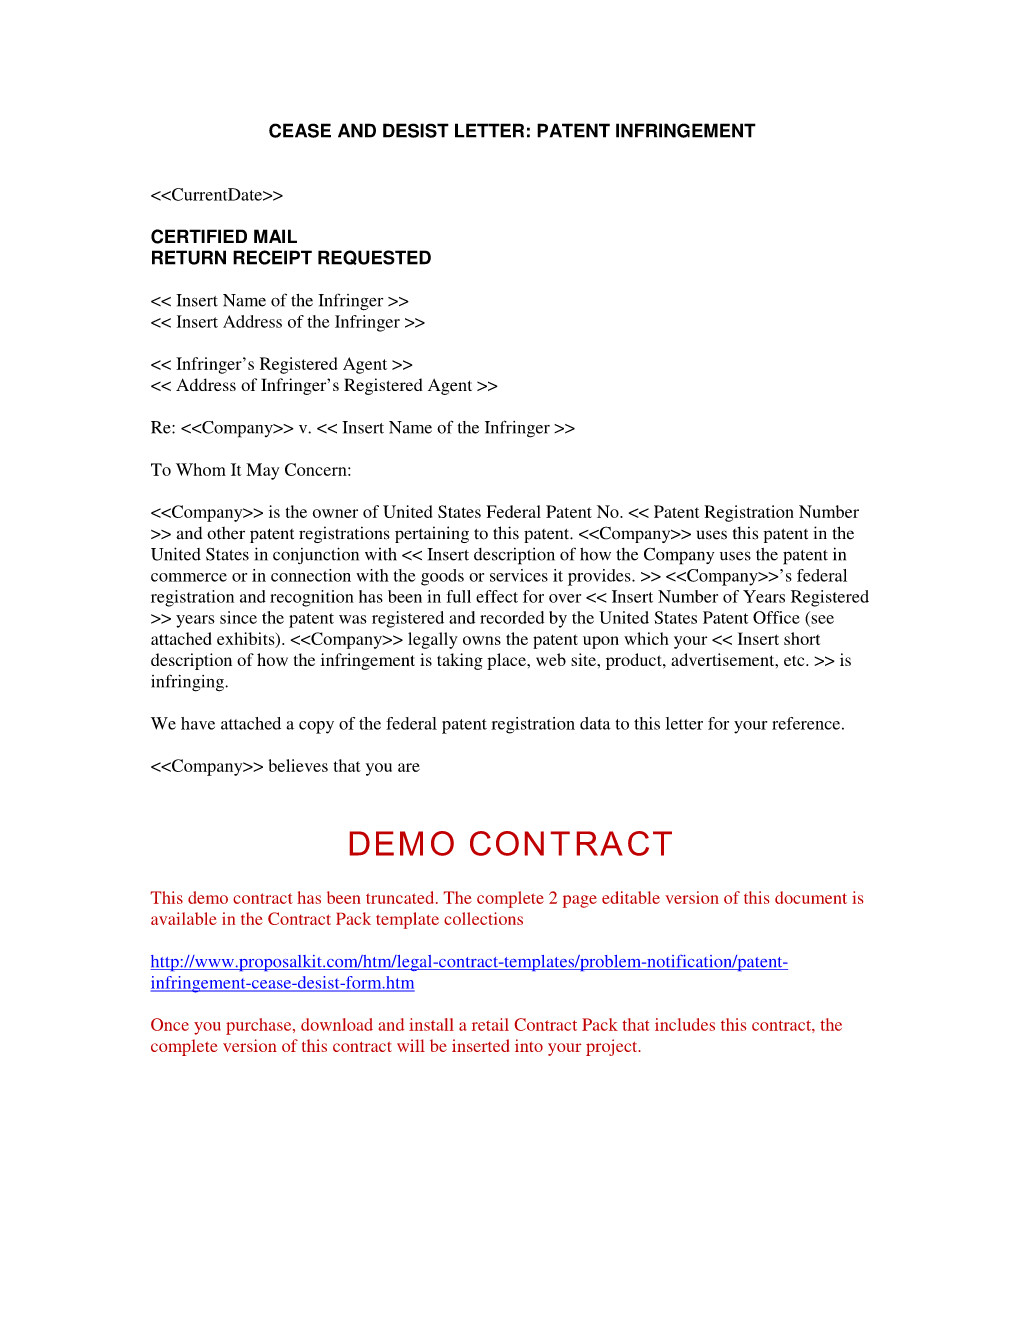 Cease and Desist Letter Template Business Name - Cease and Decease Letter Template Infringement Desist form Cp Patent